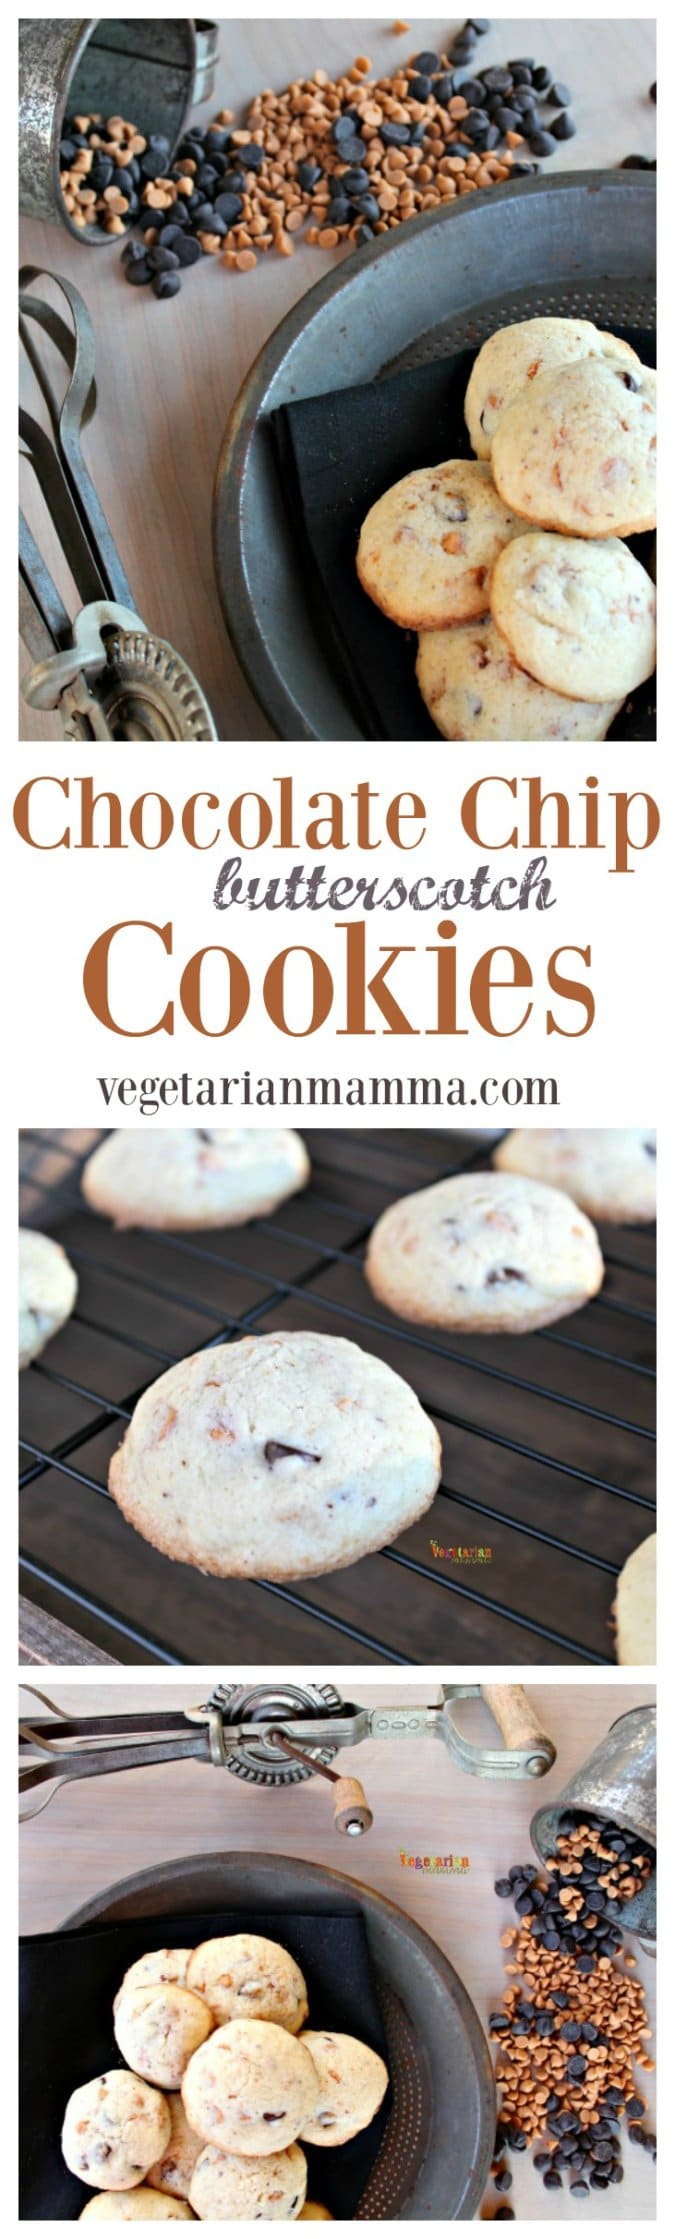 Chocolate Chip Butterscotch Cookies #glutenfree #gfree @vegetarianmamma.com #cookies